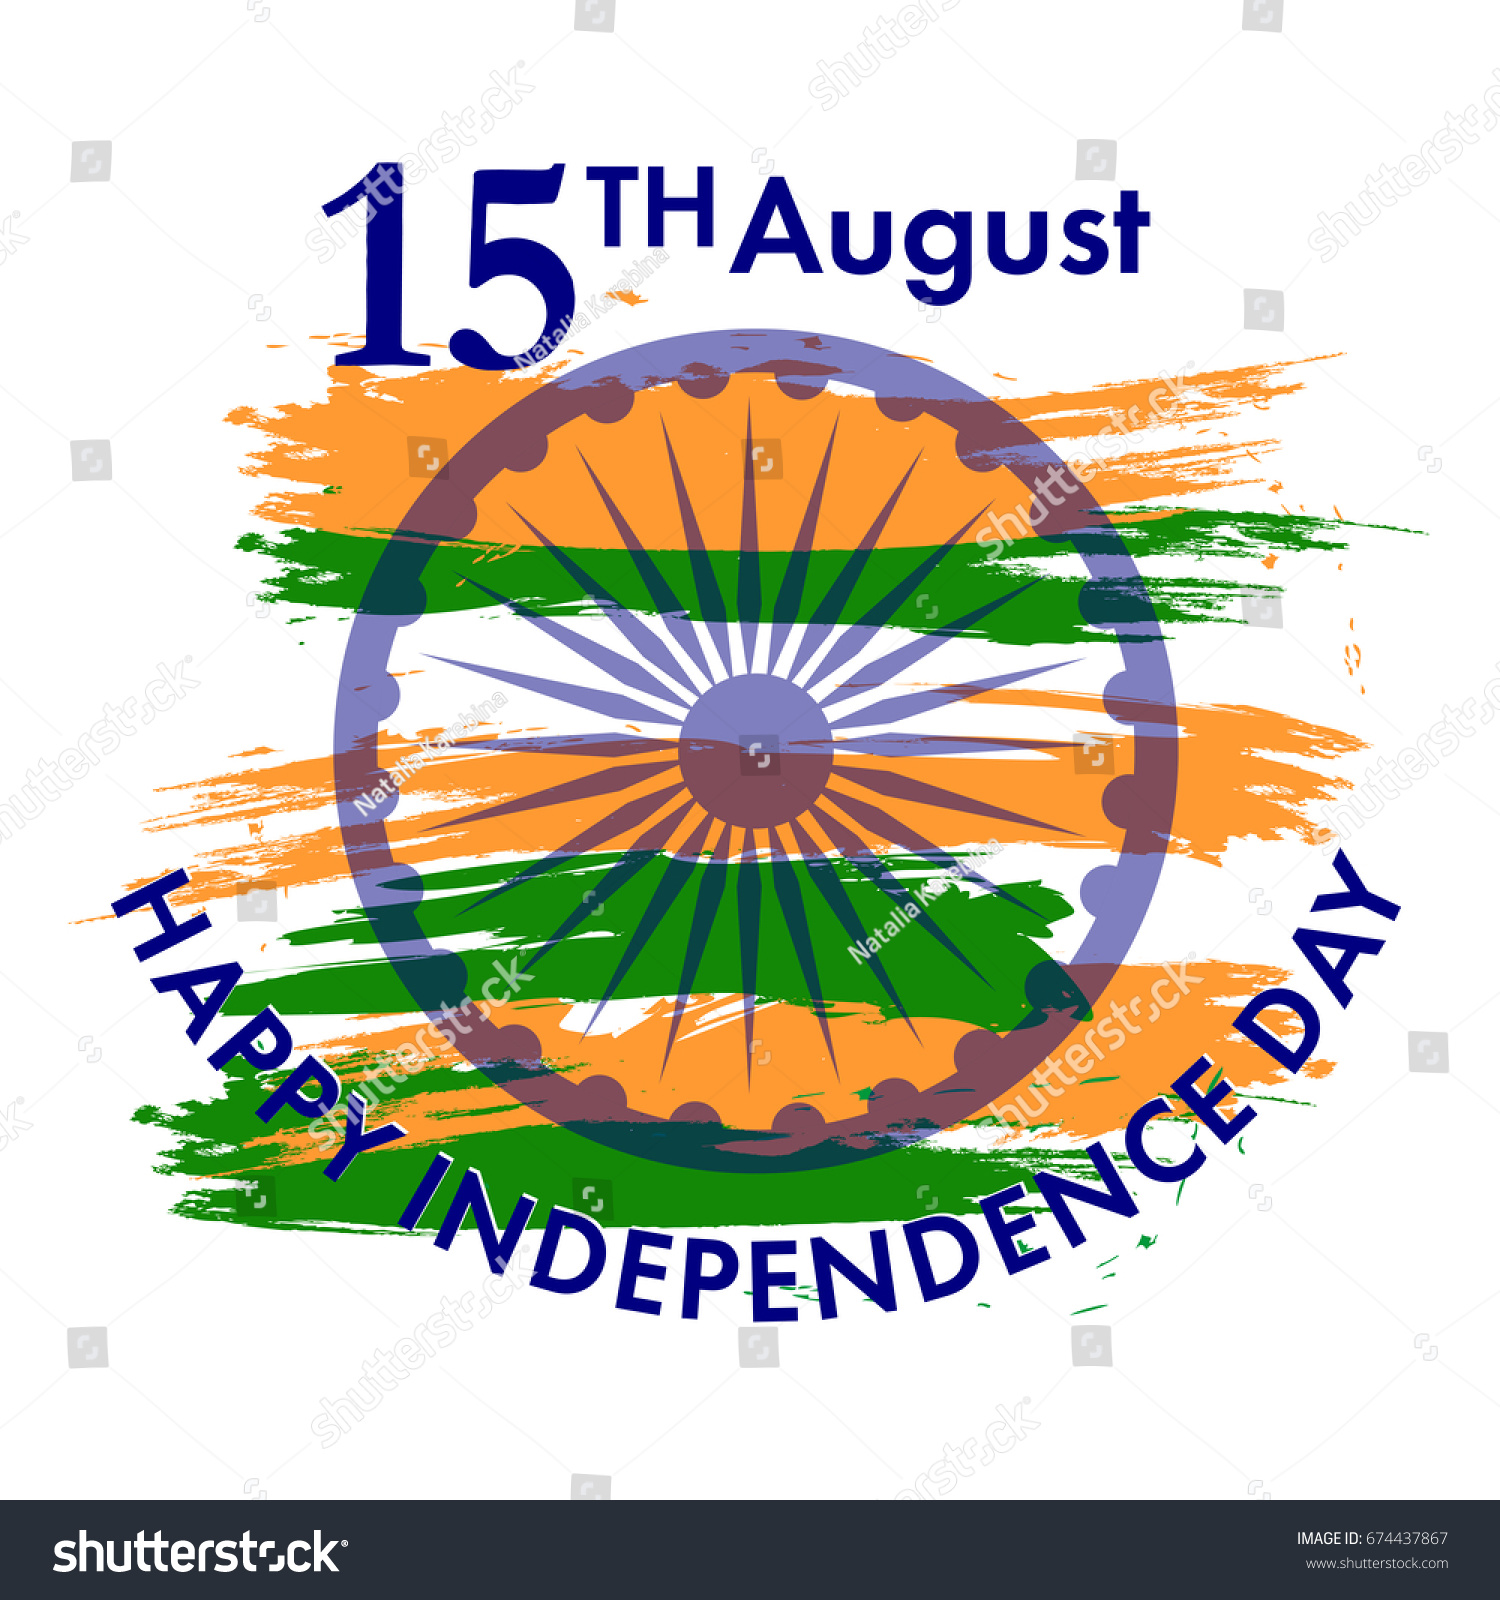 Colors website ashoka - Indian Independence Day With Ashoka Wheel 15 Th August The Colors Of The National Flag